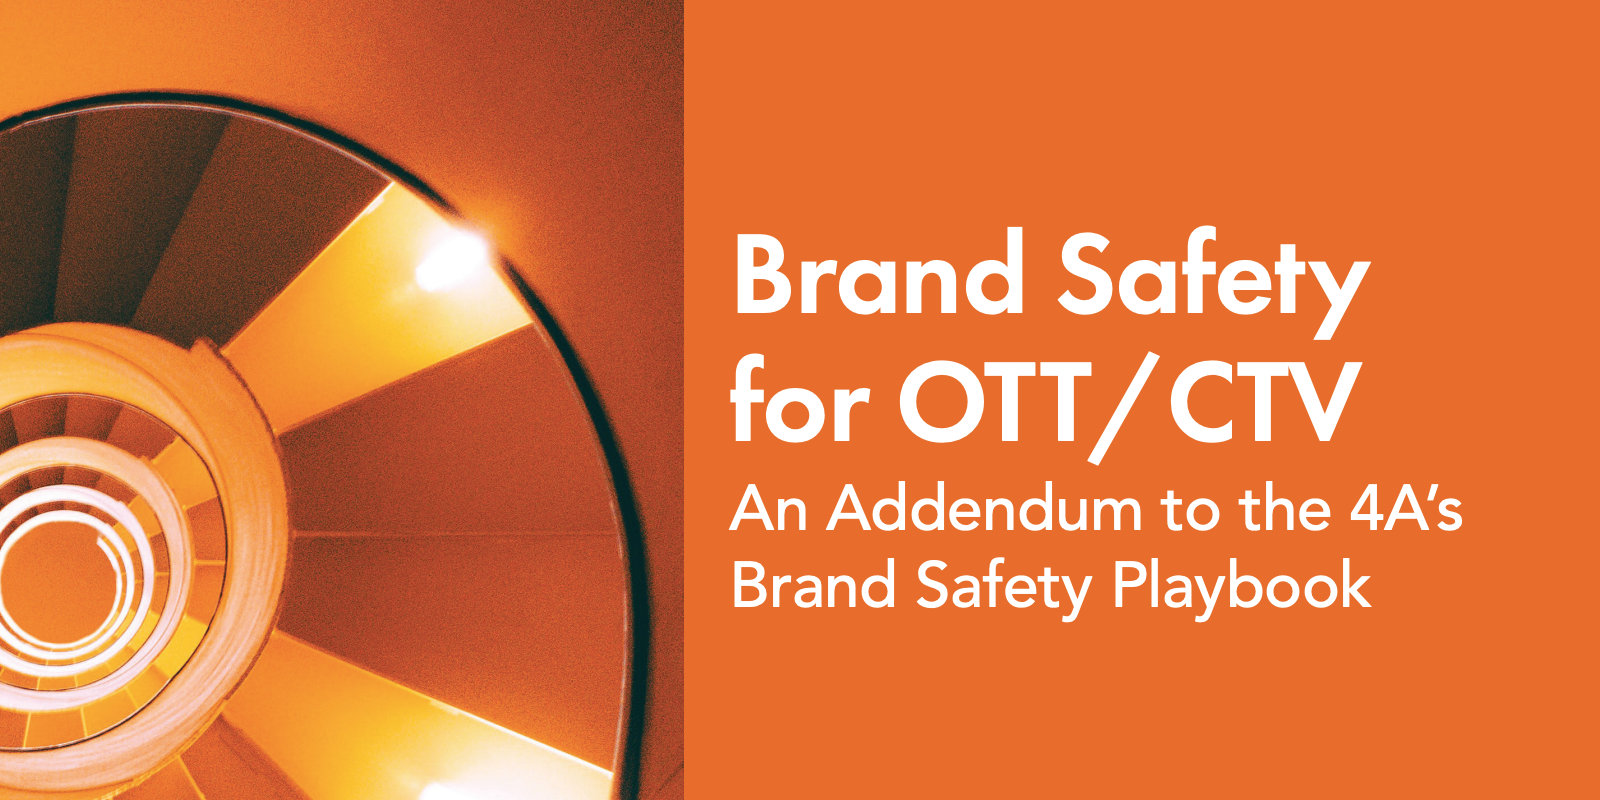 brand-safety-ott-ctv-4as